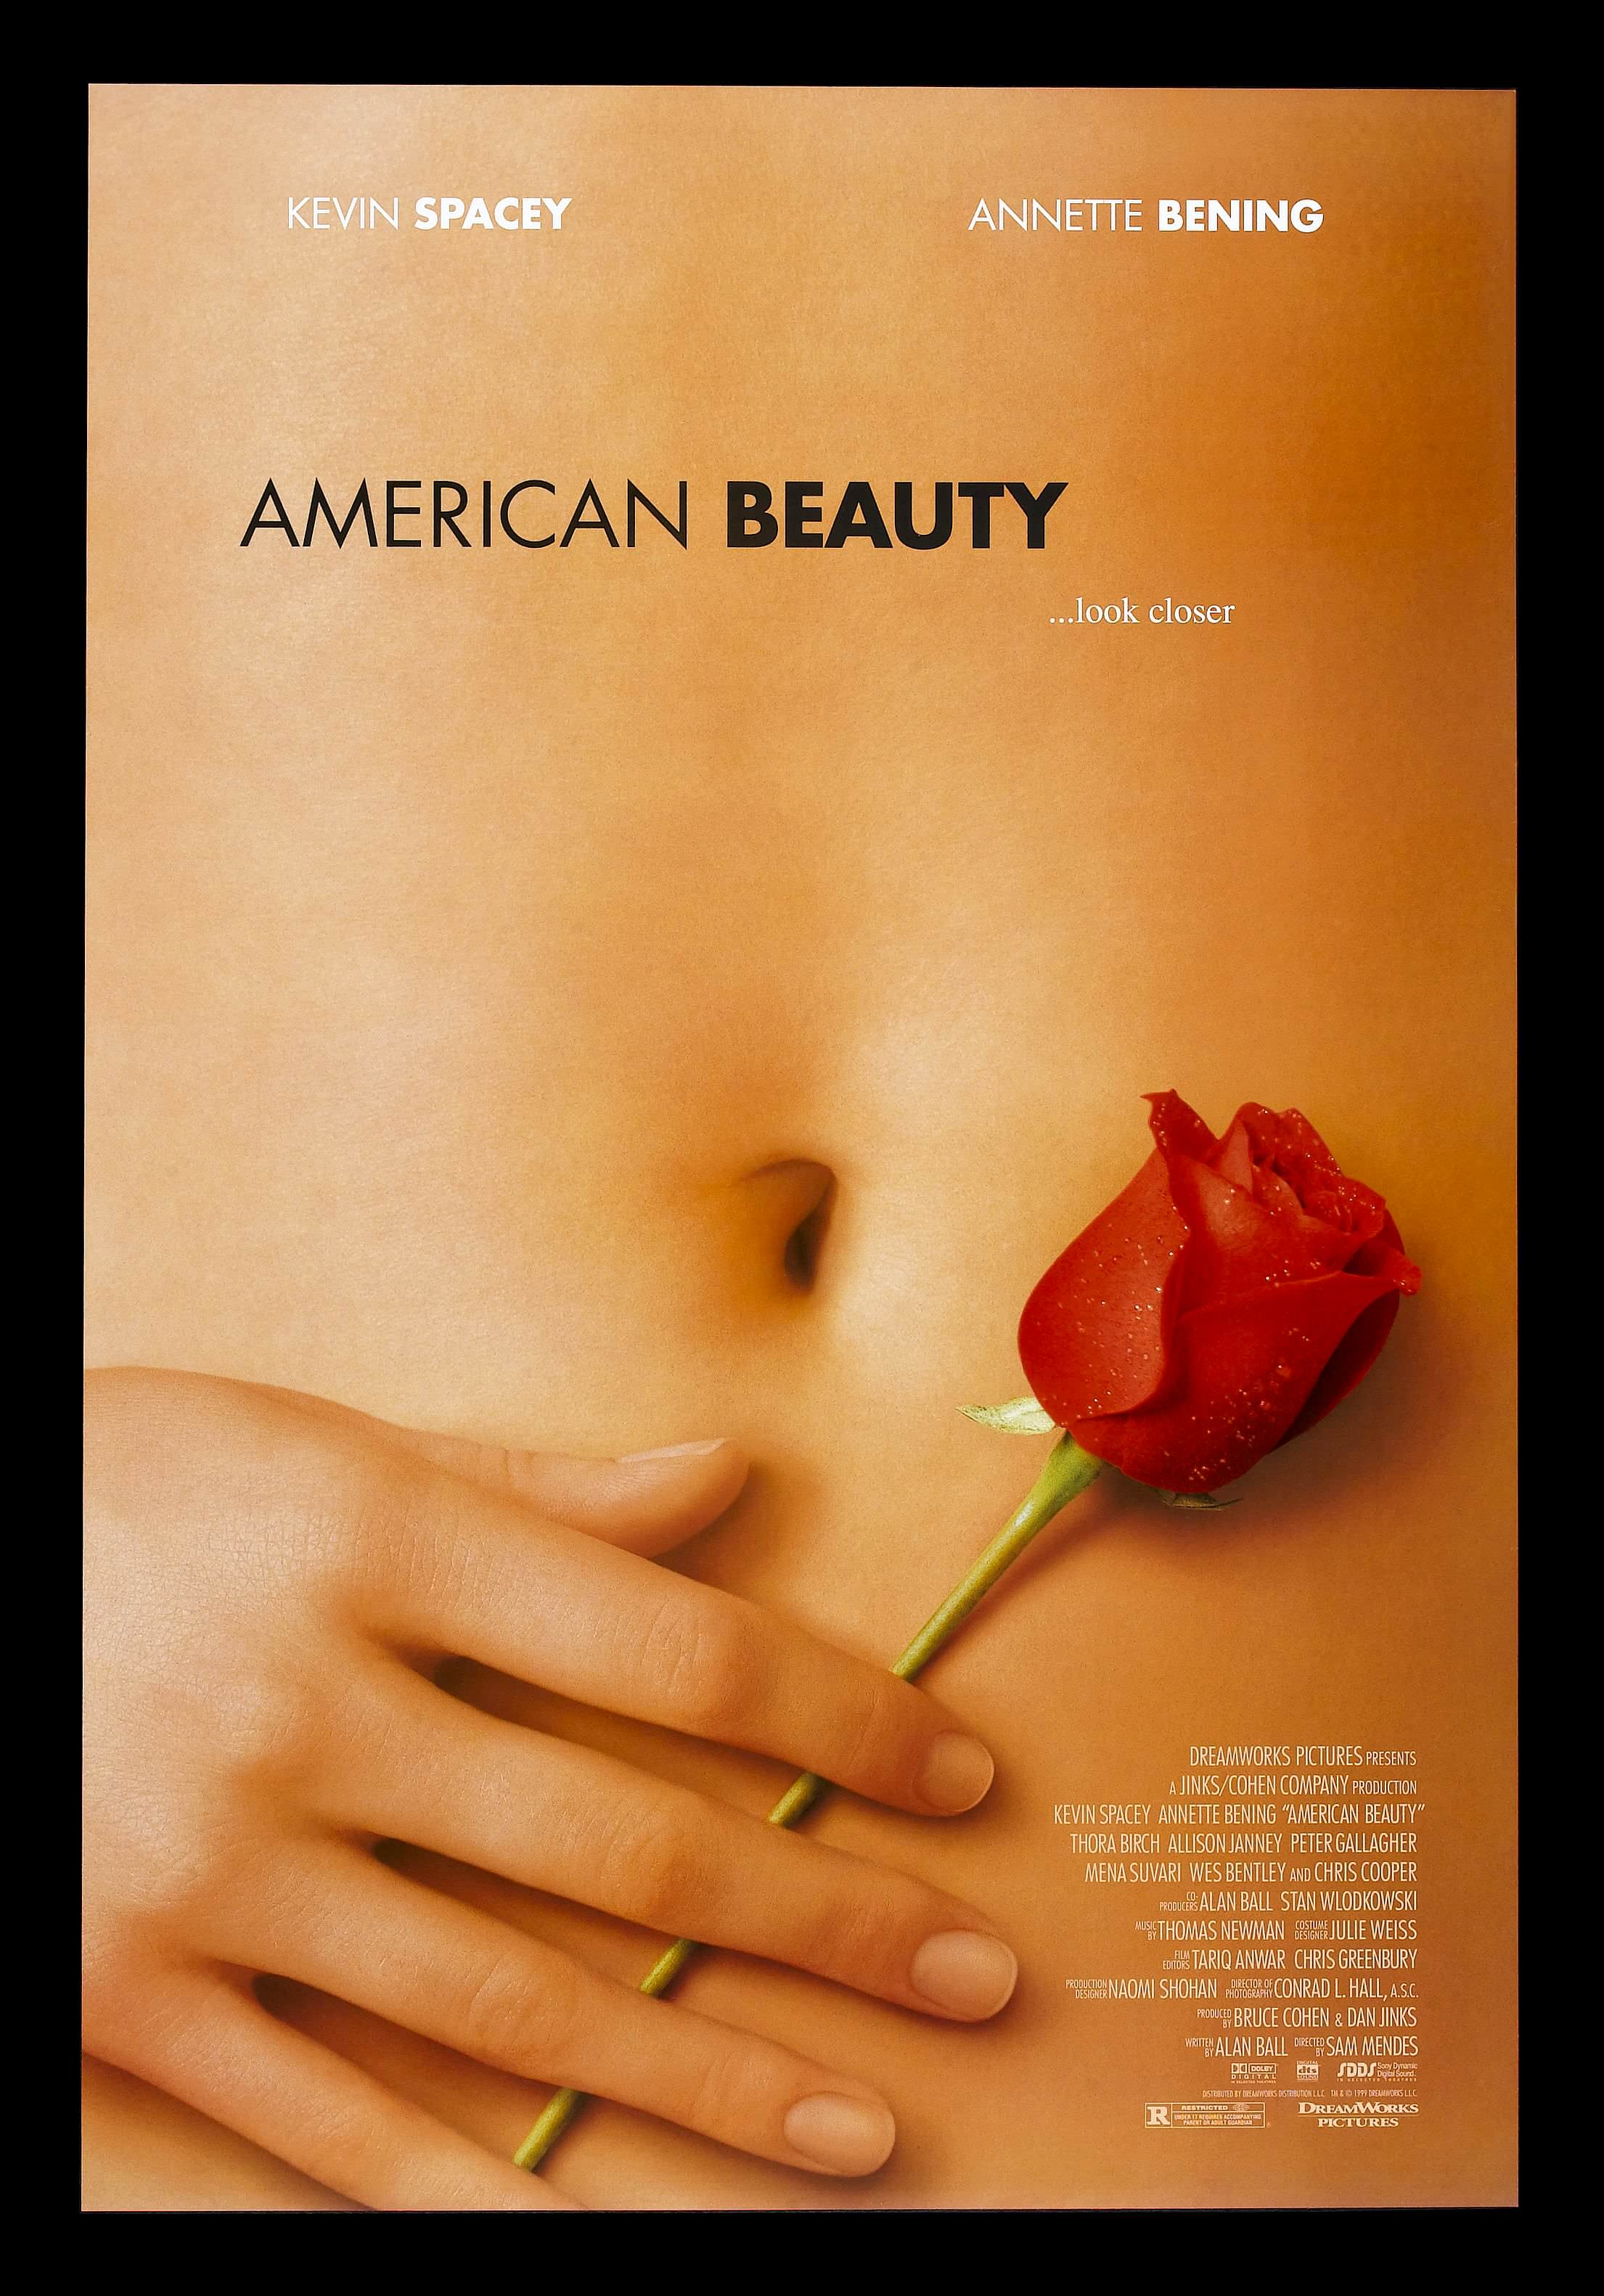 American beauty mendes